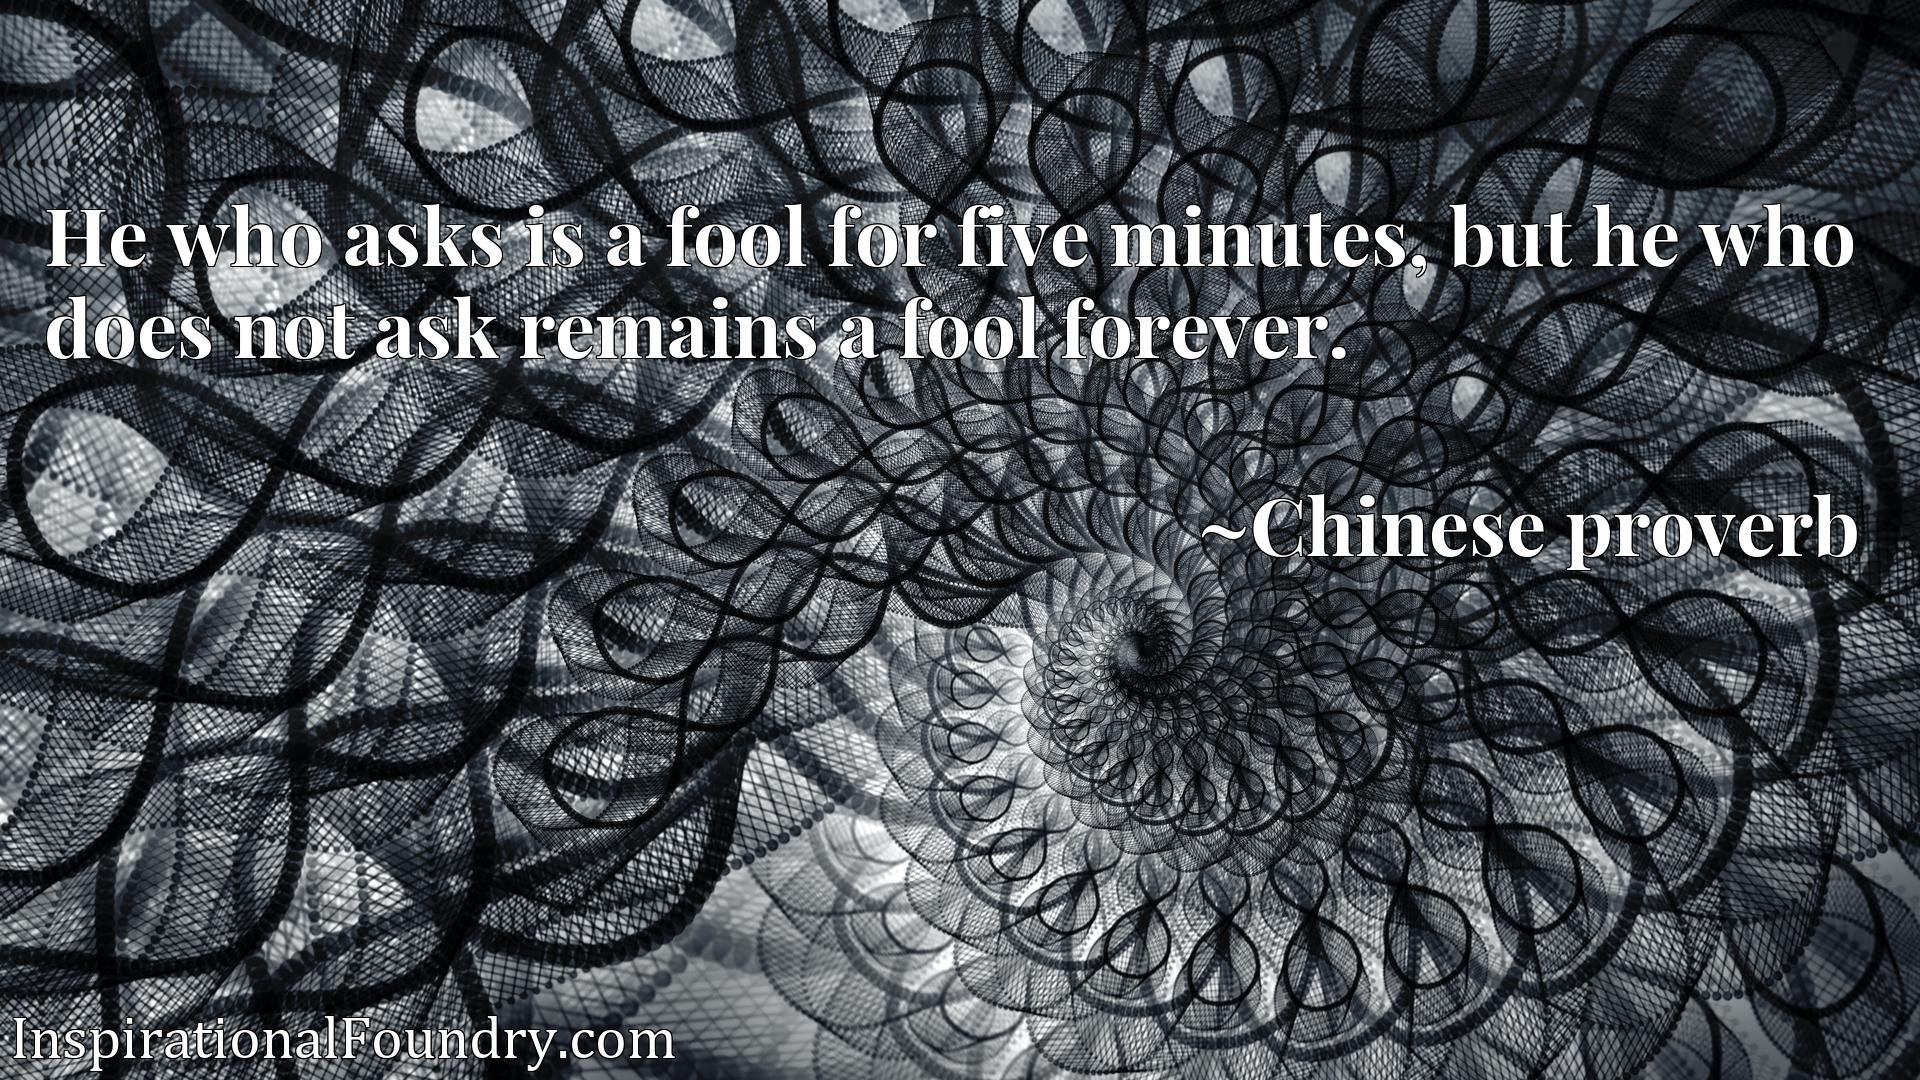 He who asks is a fool for five minutes, but he who does not ask remains a fool forever.